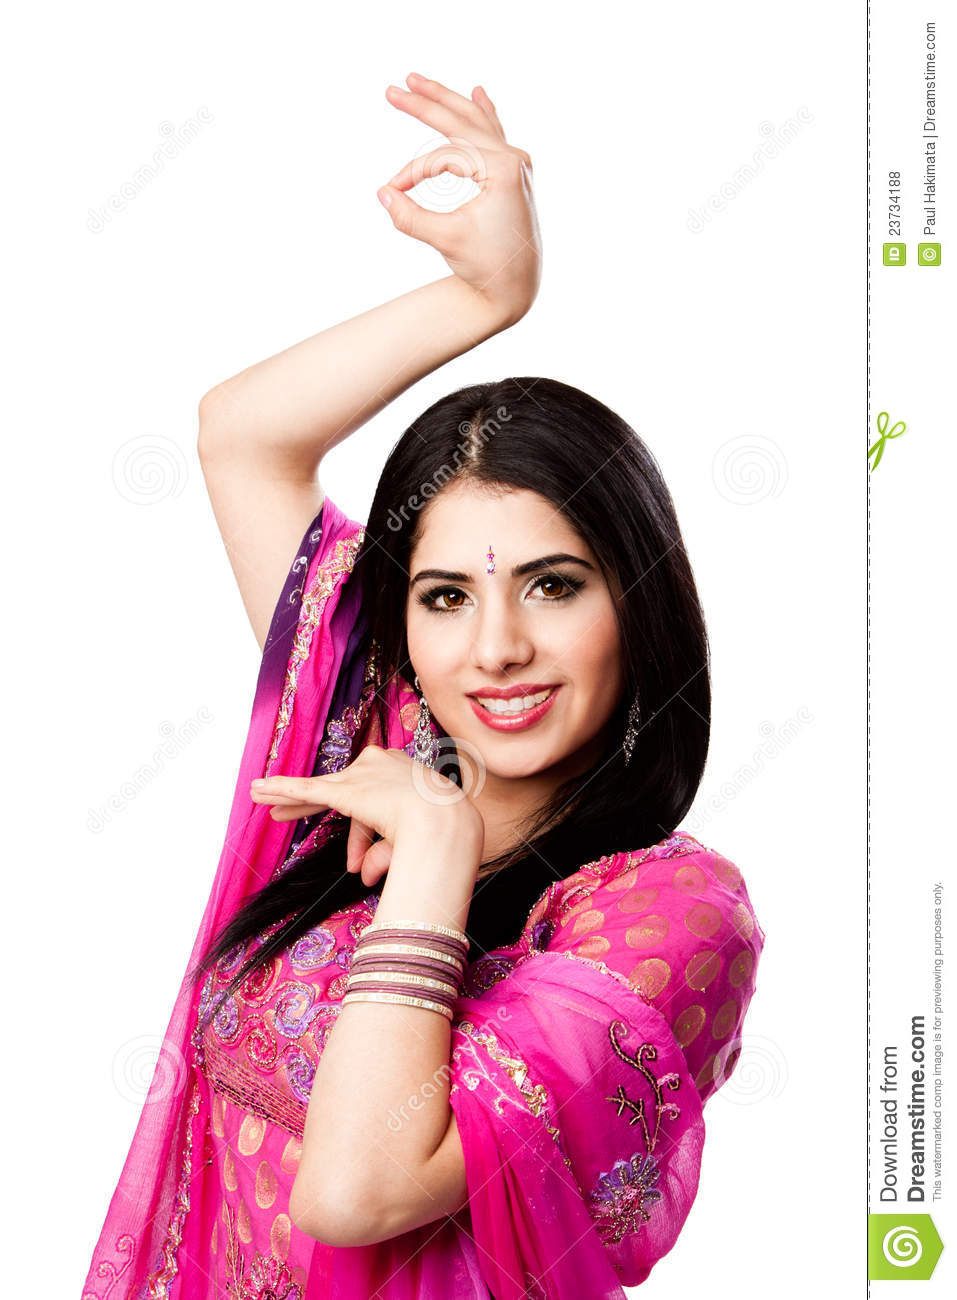 hindu single women in happy This paper deals with divorce under hindu  party the relationship will not be a happy  a provision are women who no longer have to silently endure.